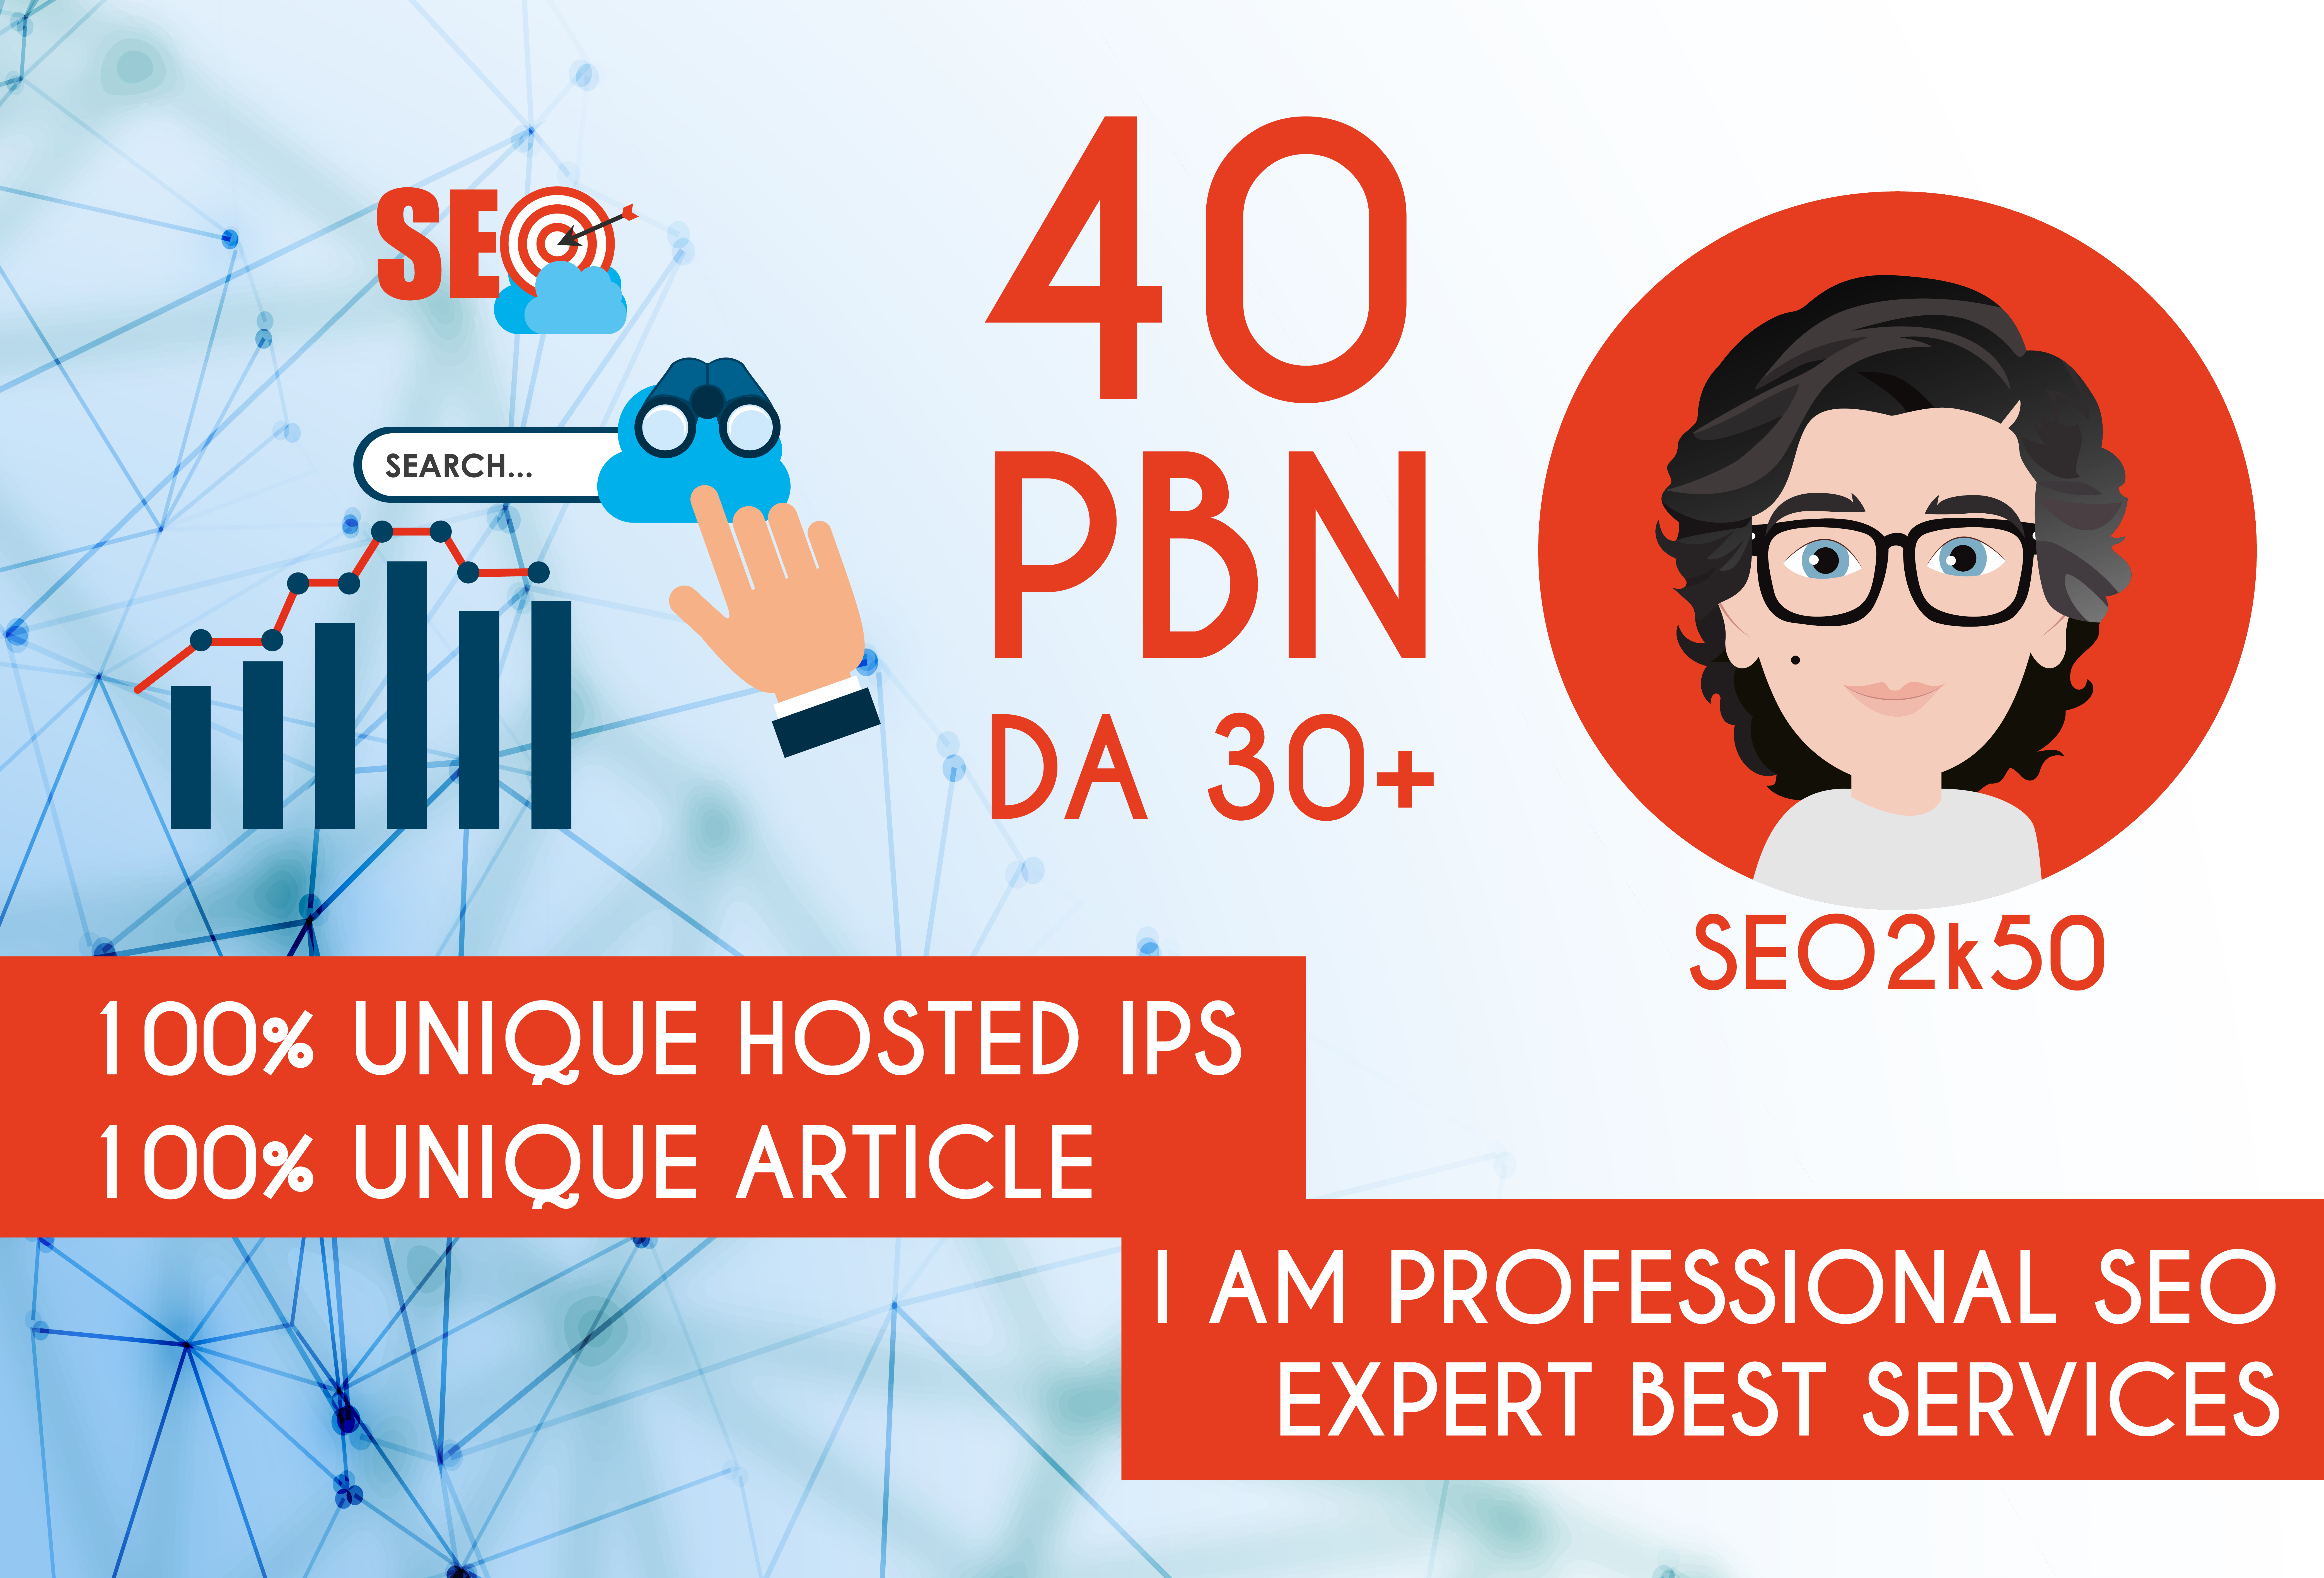 Build 40 PBN DA PA 30+ All Home Page high quality PBN Backlinks